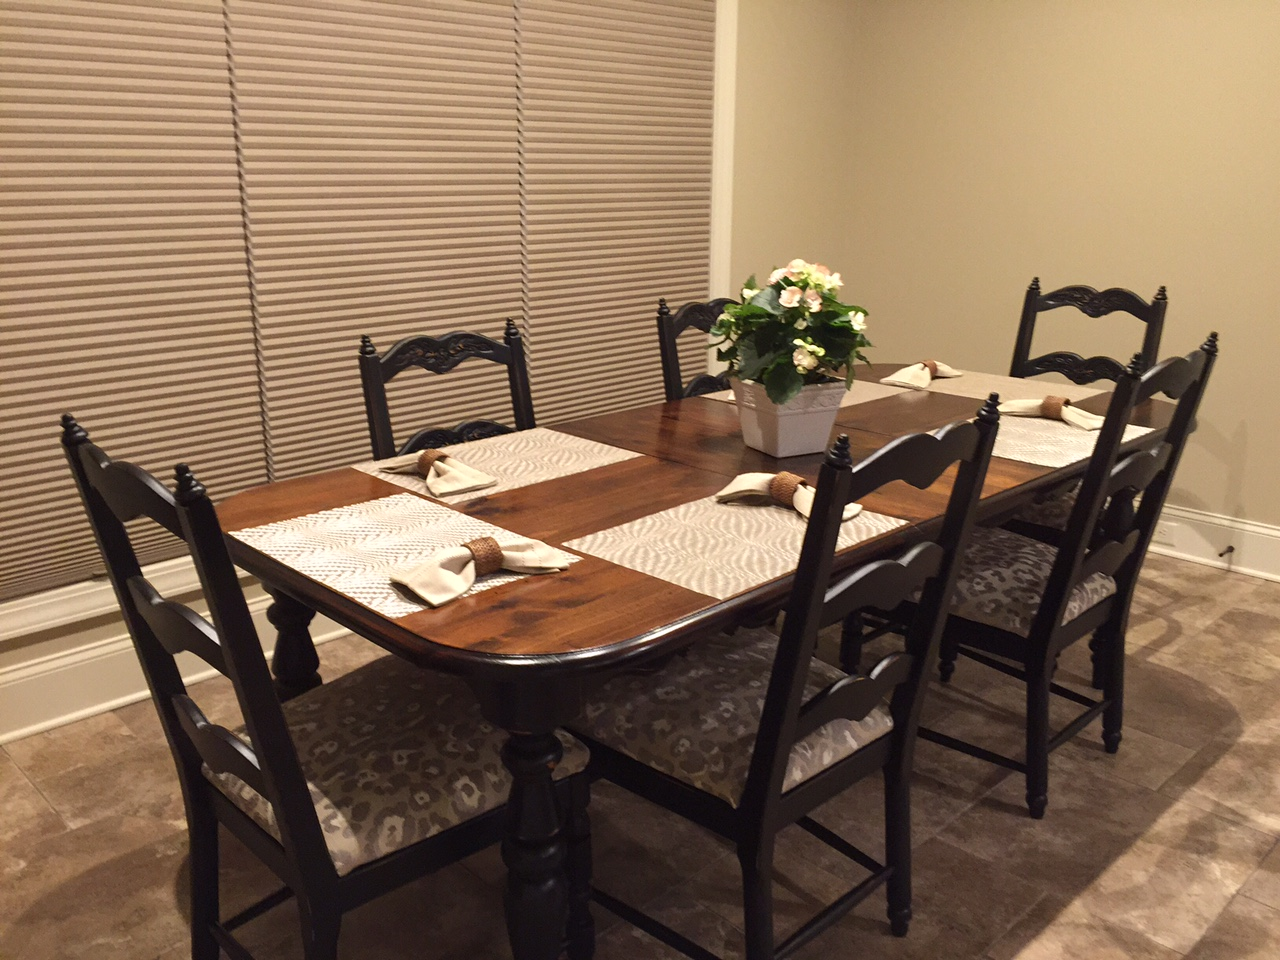 refinishing old dining room furniture for new home just